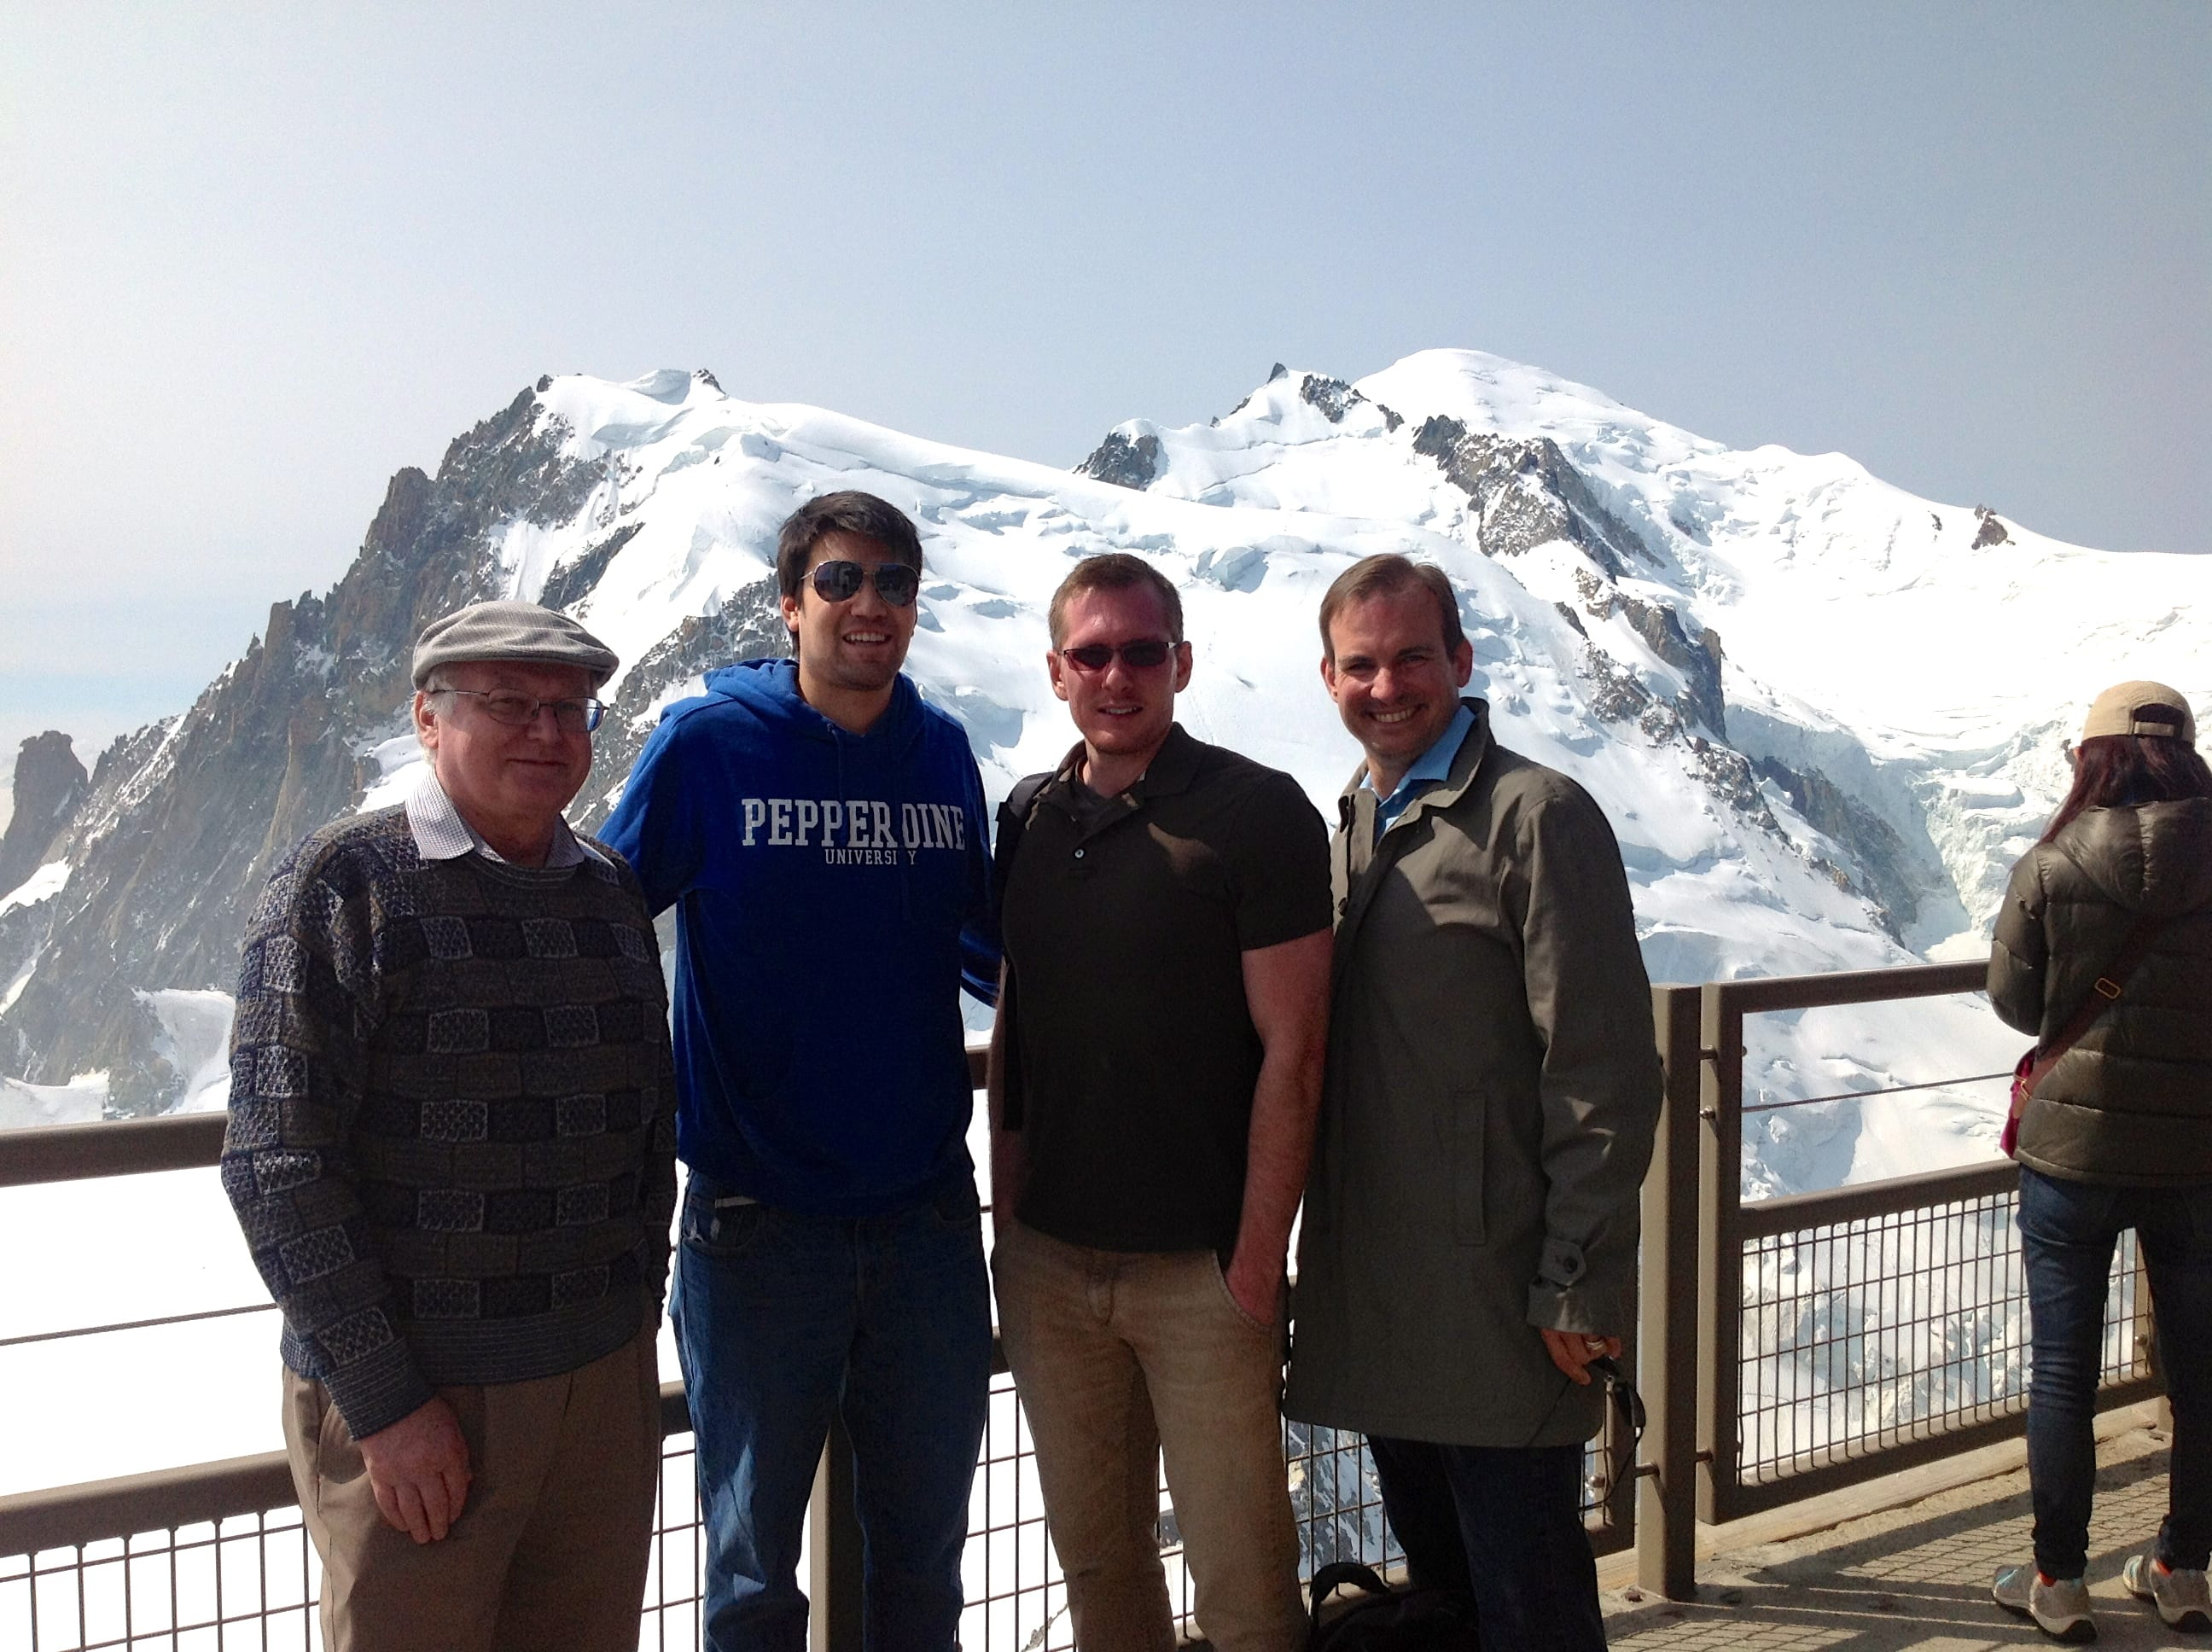 SMU physicists take a break on Mt. Blanc to refresh their creativity. From left to right: Prof. Ryszard Stroynowski, Andrew Turvey, Jeff Hetherly, and Prof. Stephen Sekula.